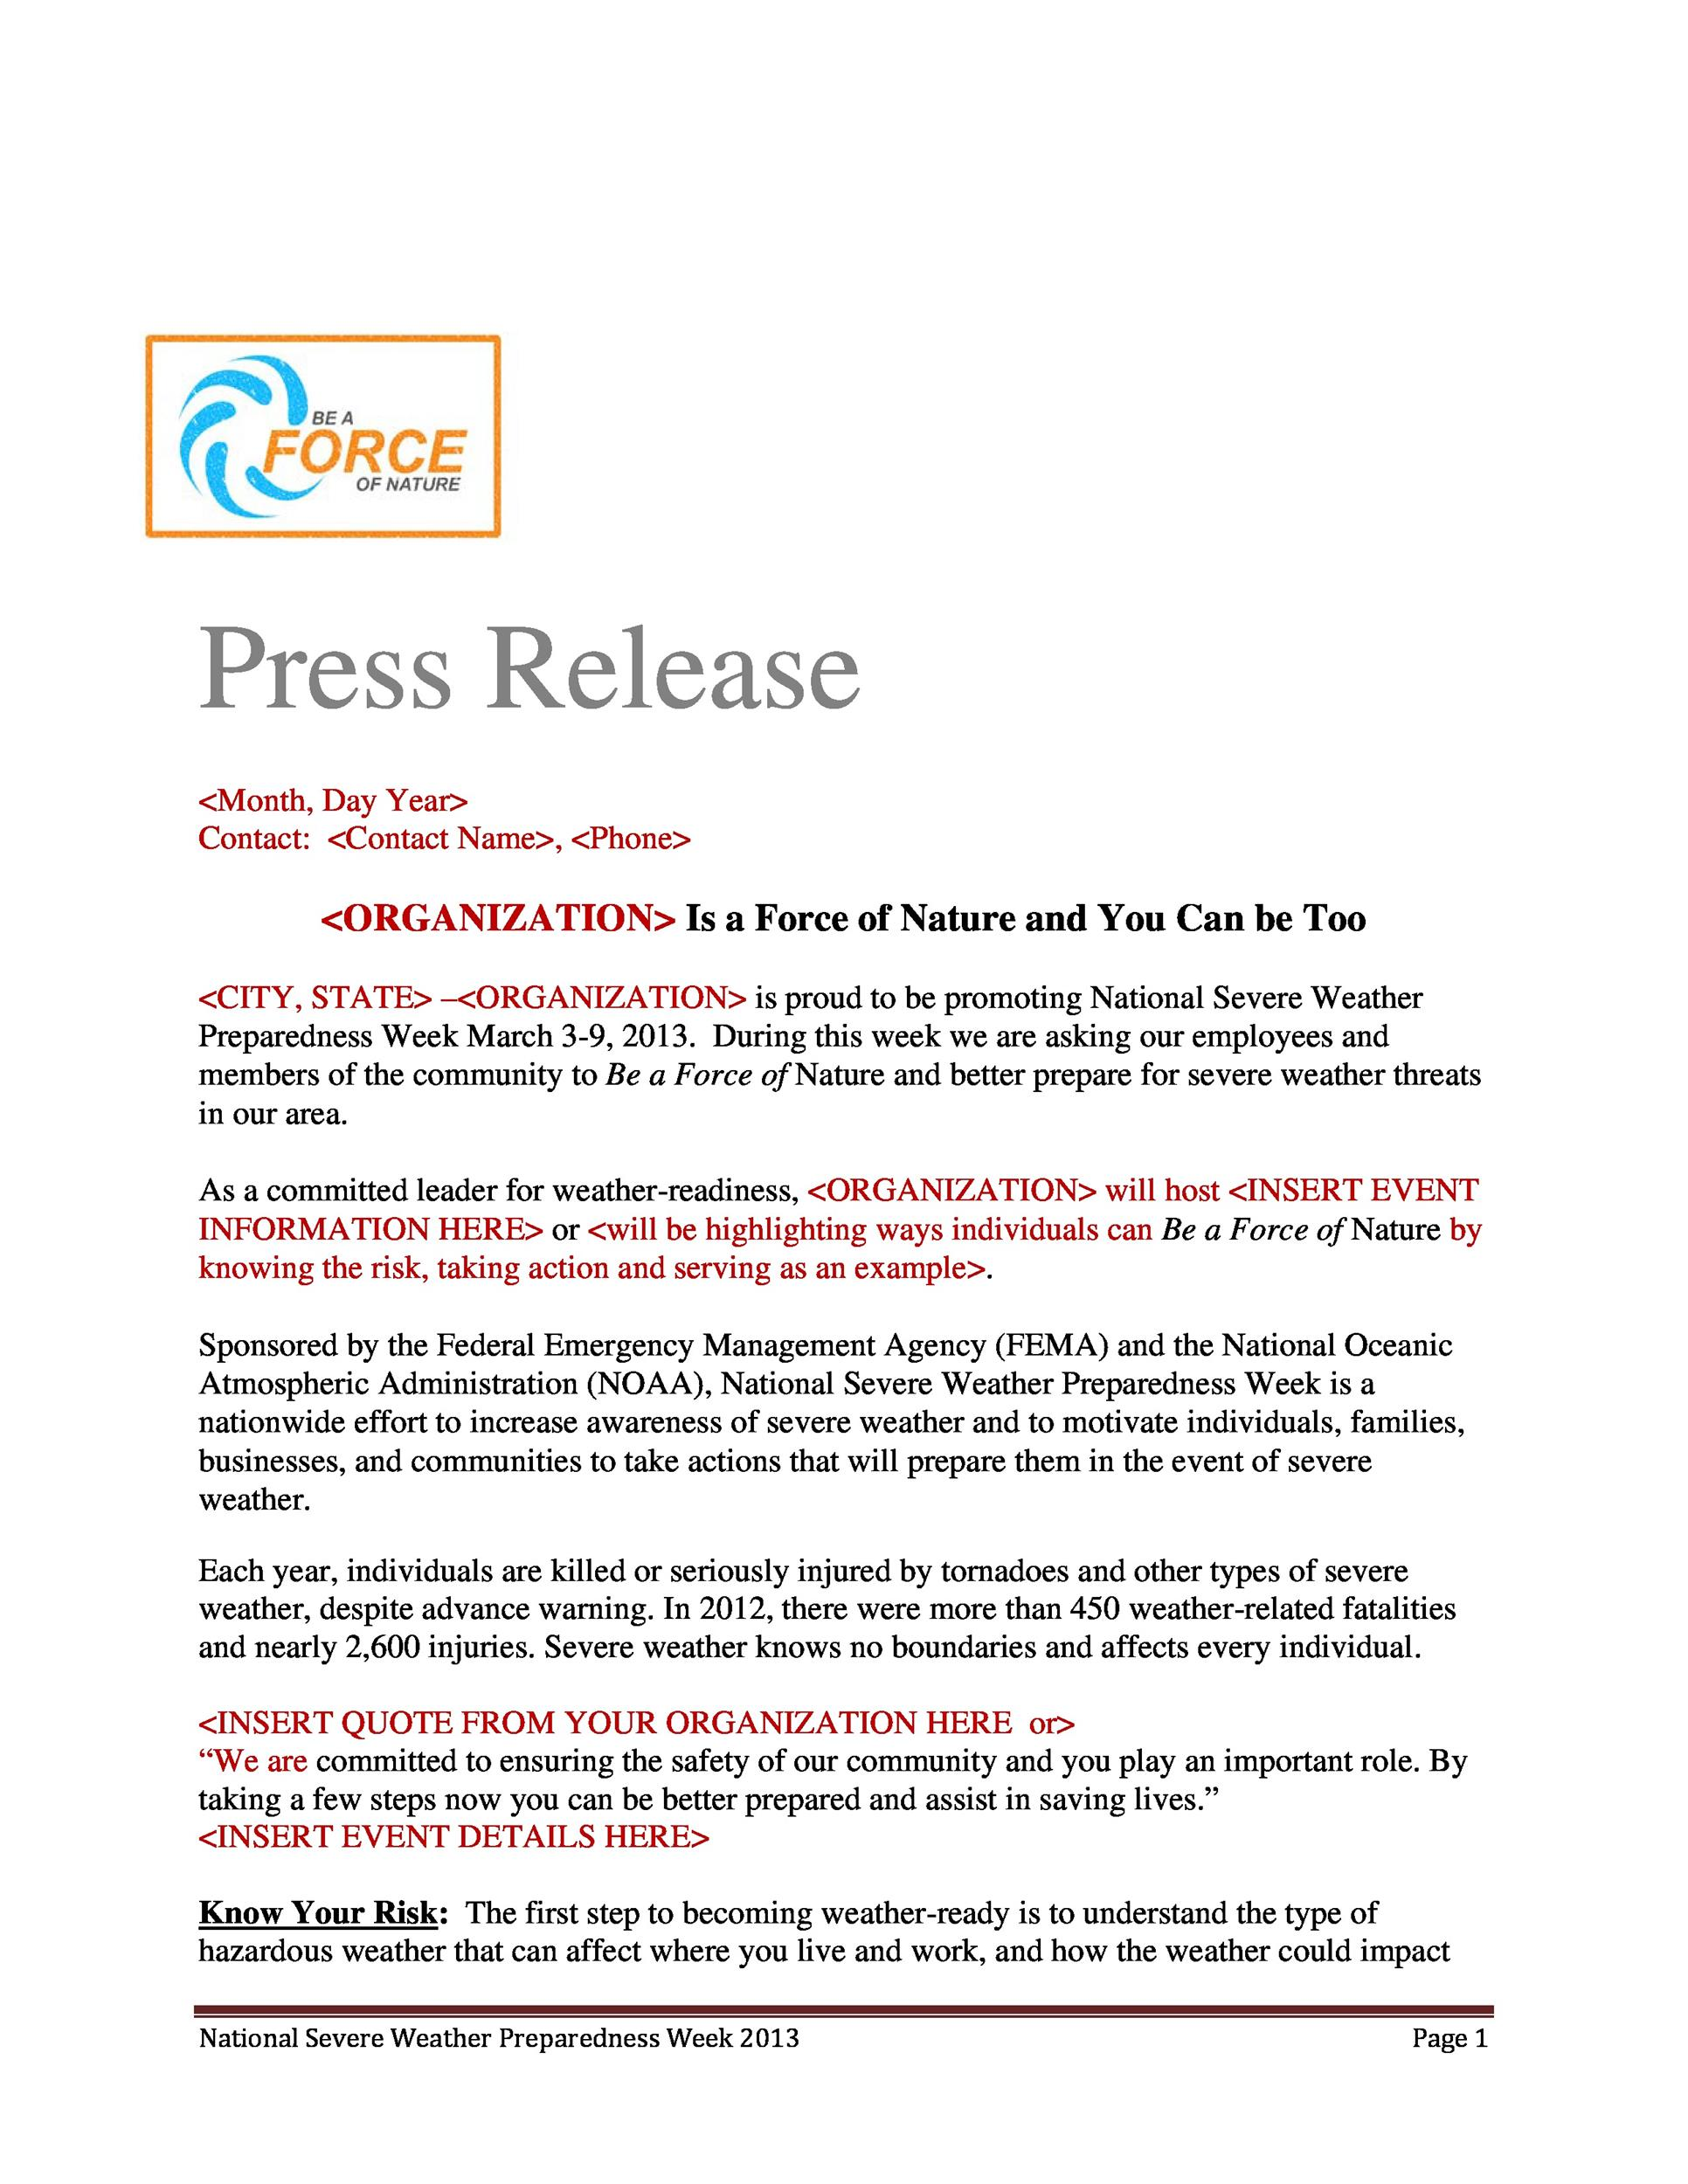 46 press release format templates examples samples for New employee press release template